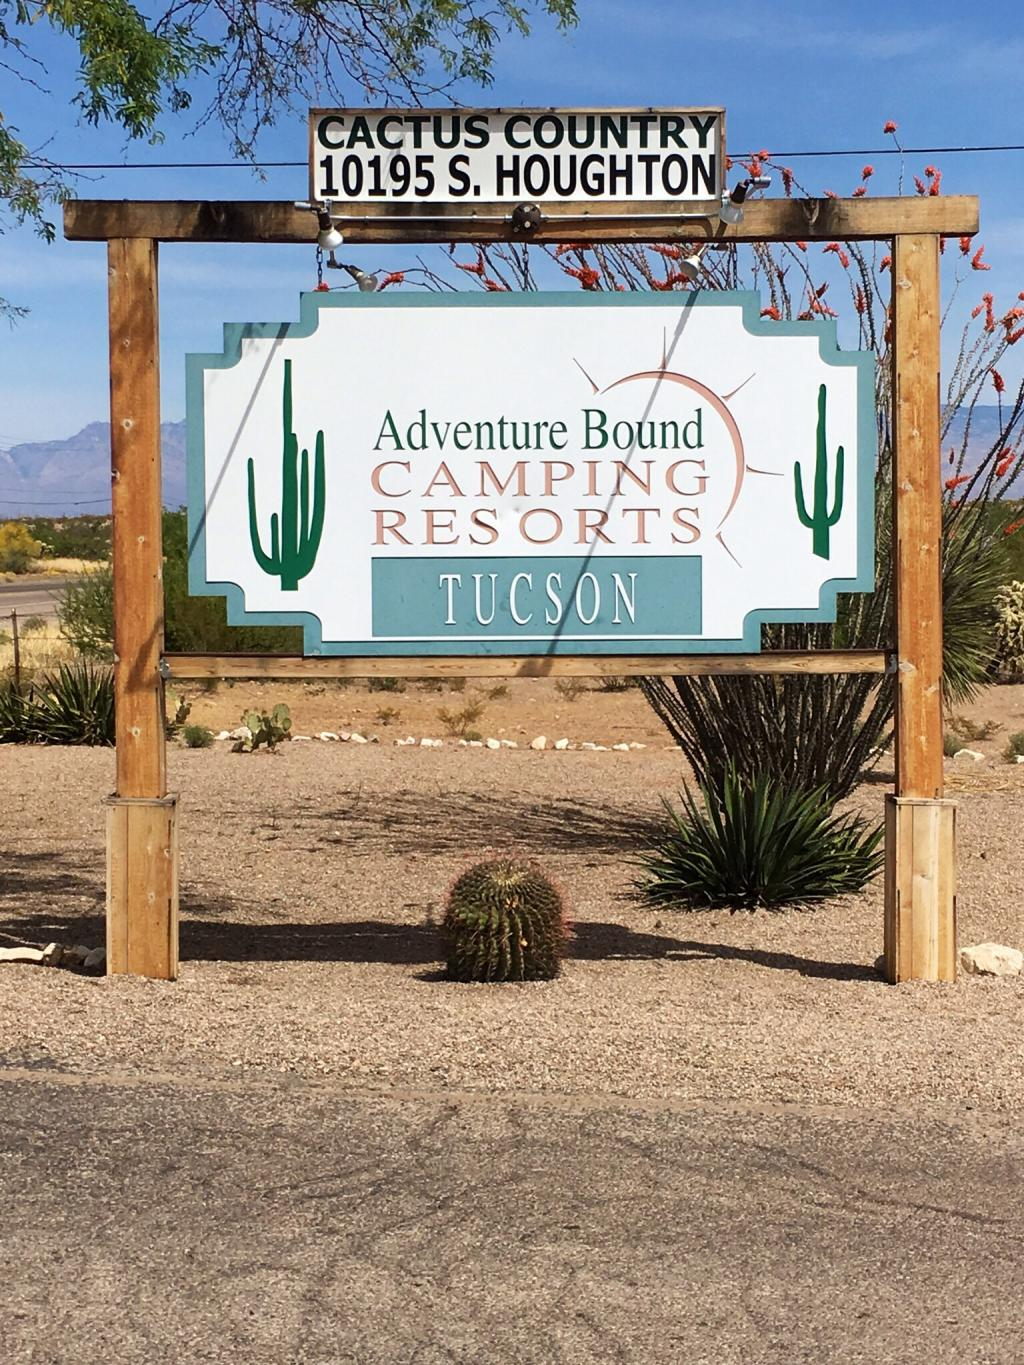 Adventure Bound Camping Resort Tucson Tucson Arizona